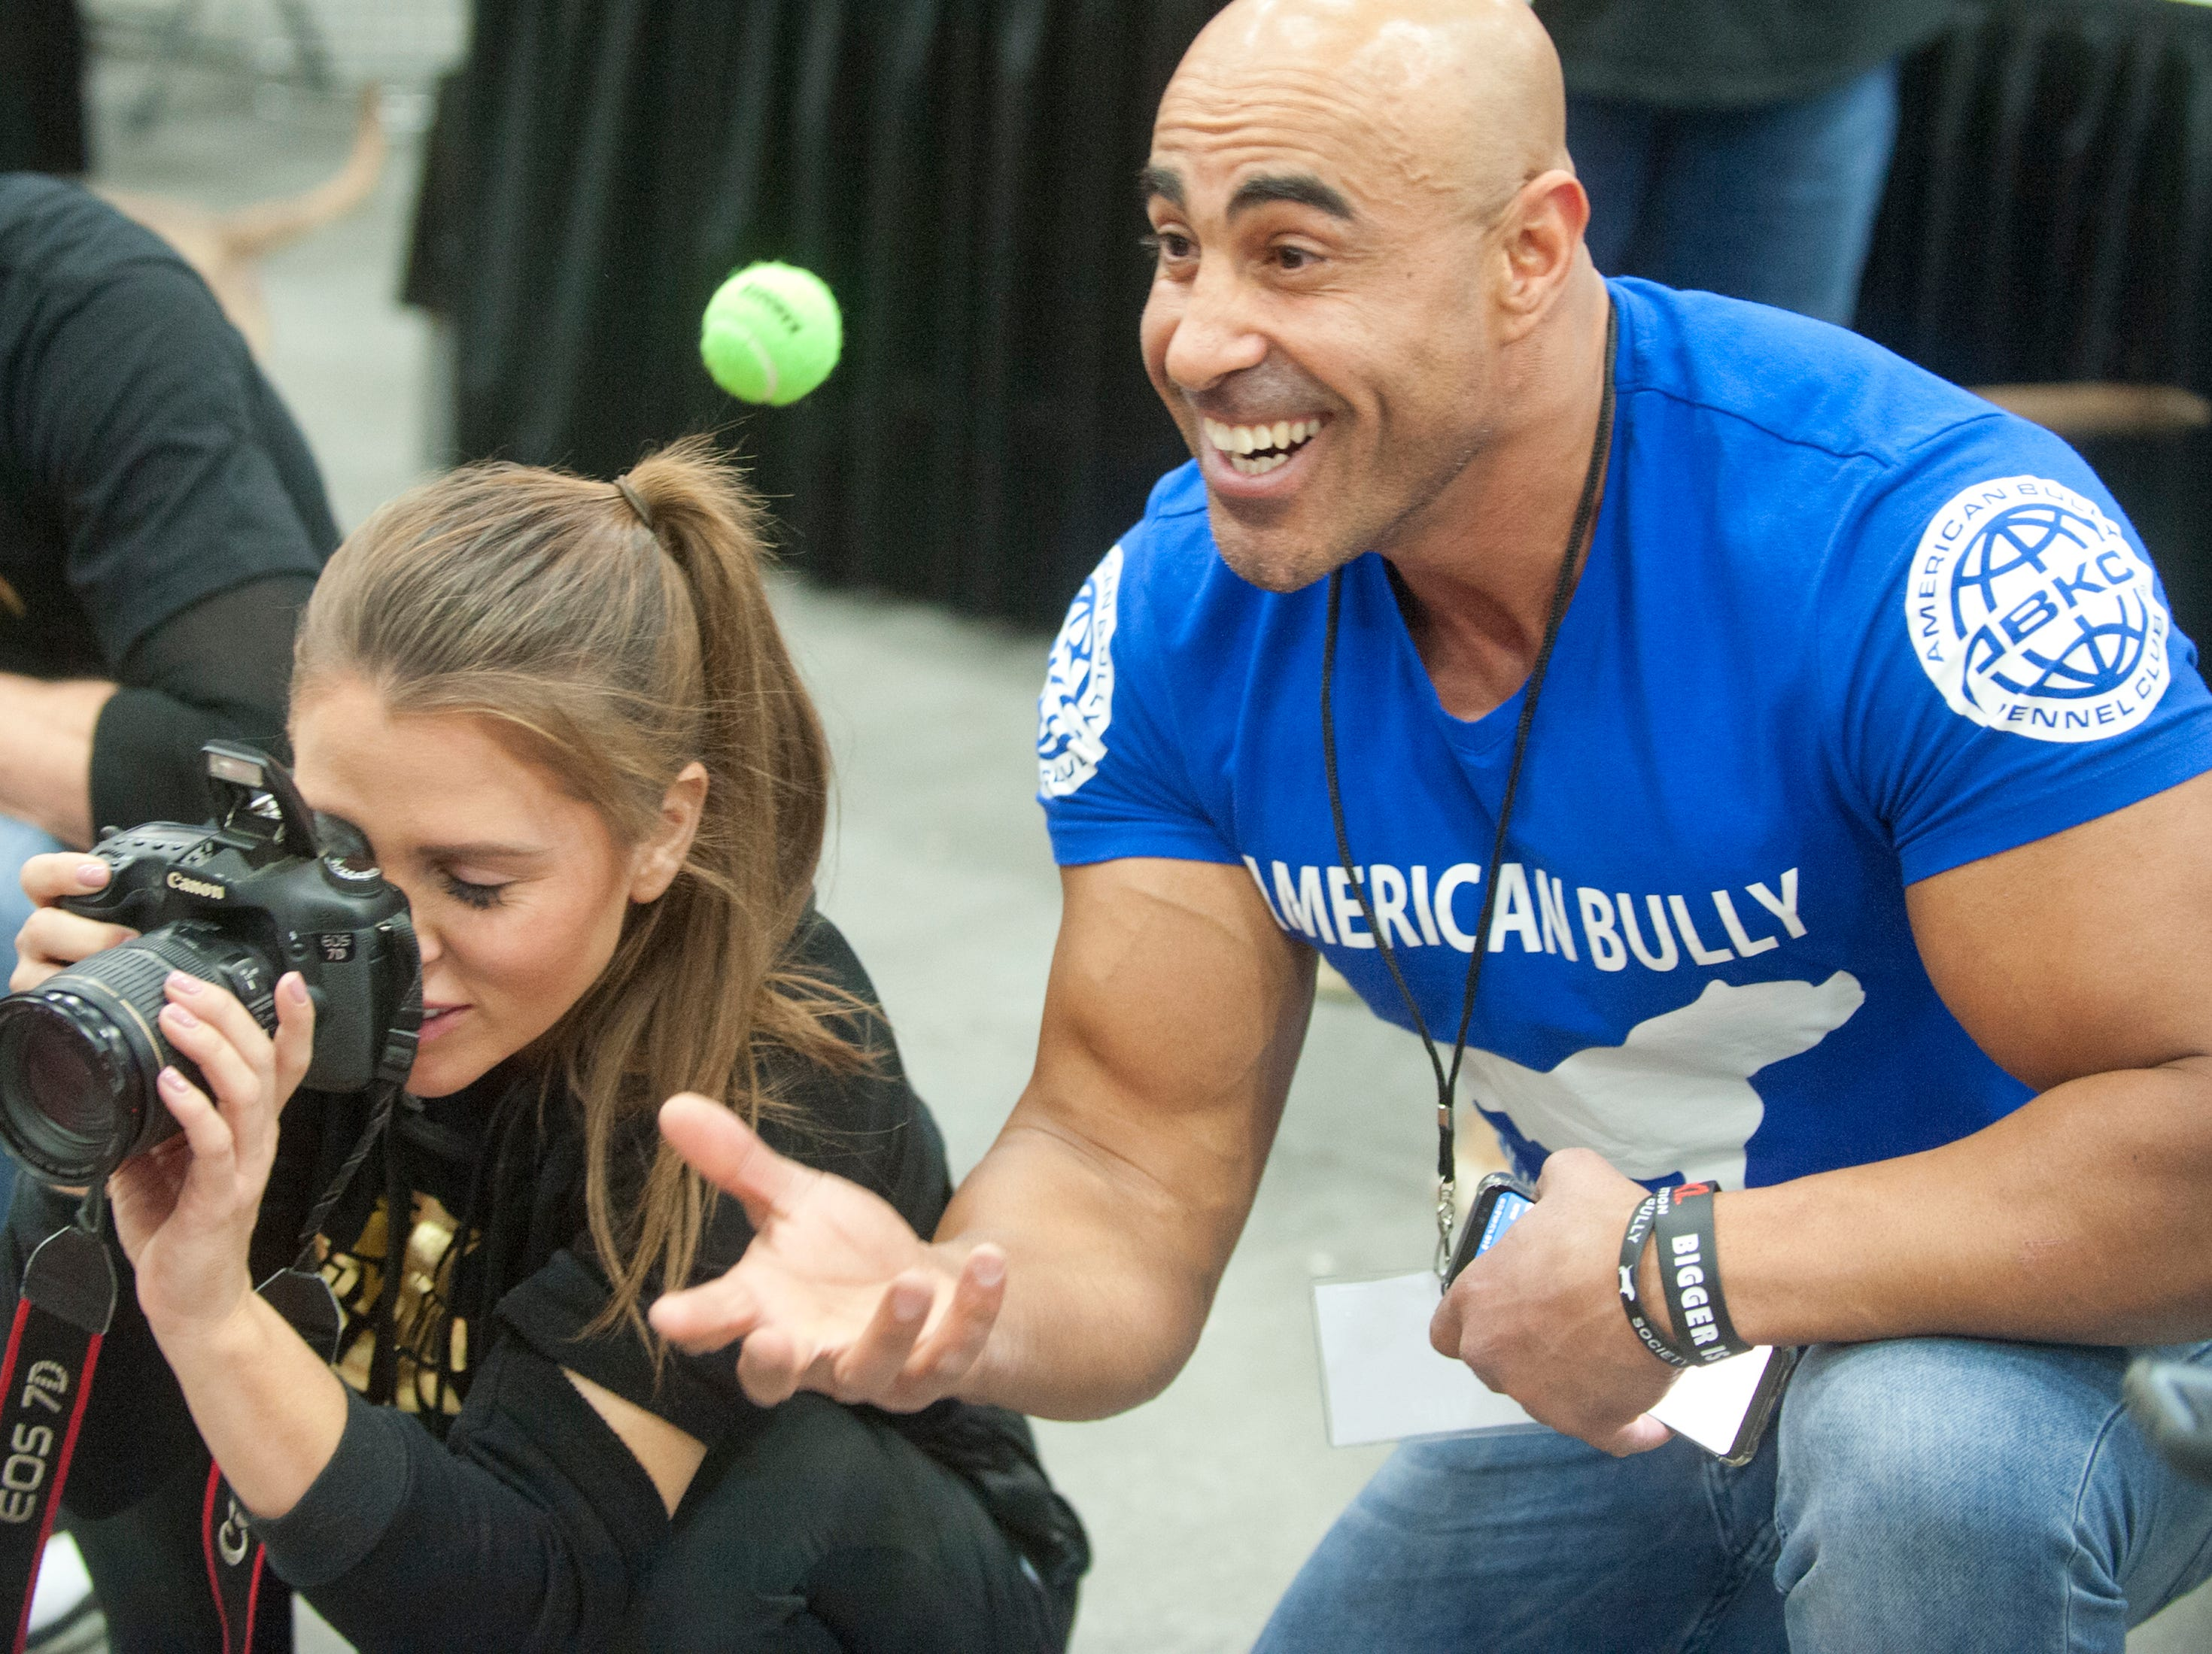 Ragim Simone Magh of the Netherlands tosses a ball in the air to get the attention of a bulldog as its owner, Kathryn Sowerbrower of Bossy Kennels, IN.c, of Marrietta, CA., snaps its portrait at the 2018 American Bully Kennel Club's 12th annual confirmation event at the Kentucky Convention Center in Louisville.November 10, 2018